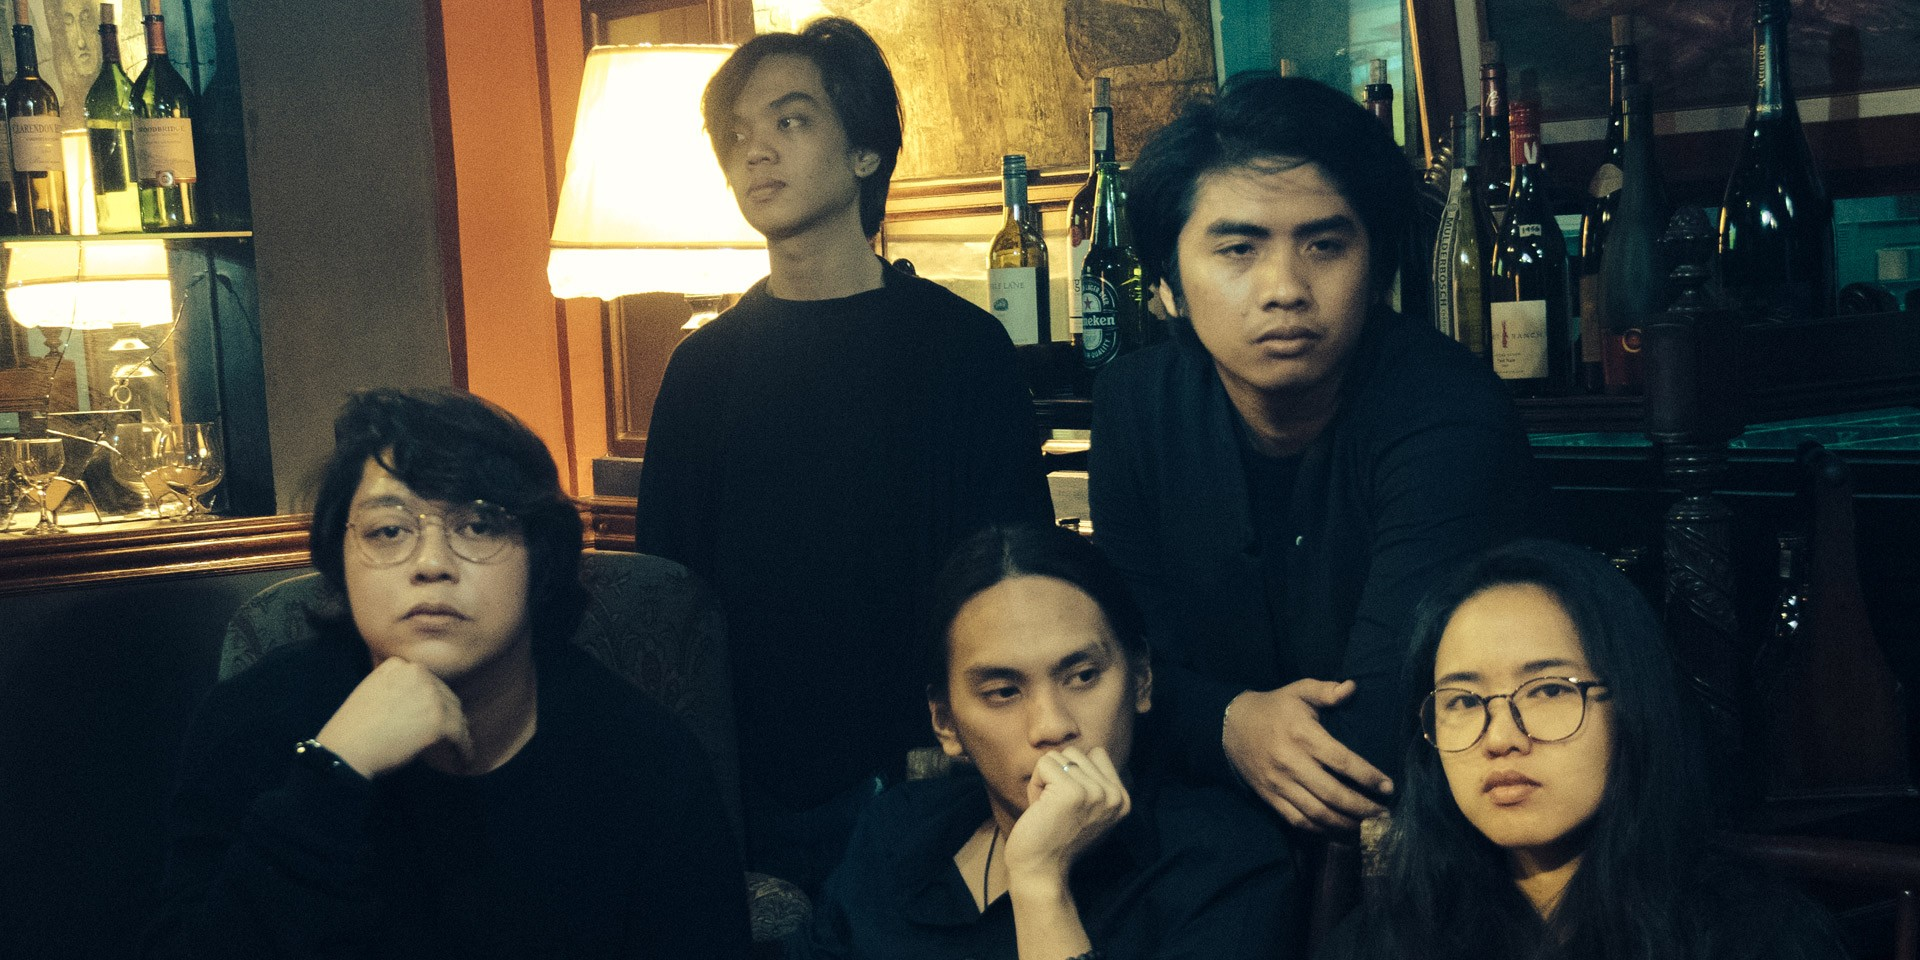 Carousel Casualties reveal new single 'Always' featuring Mic-Mic Manalo & Gani Palabyab – listen